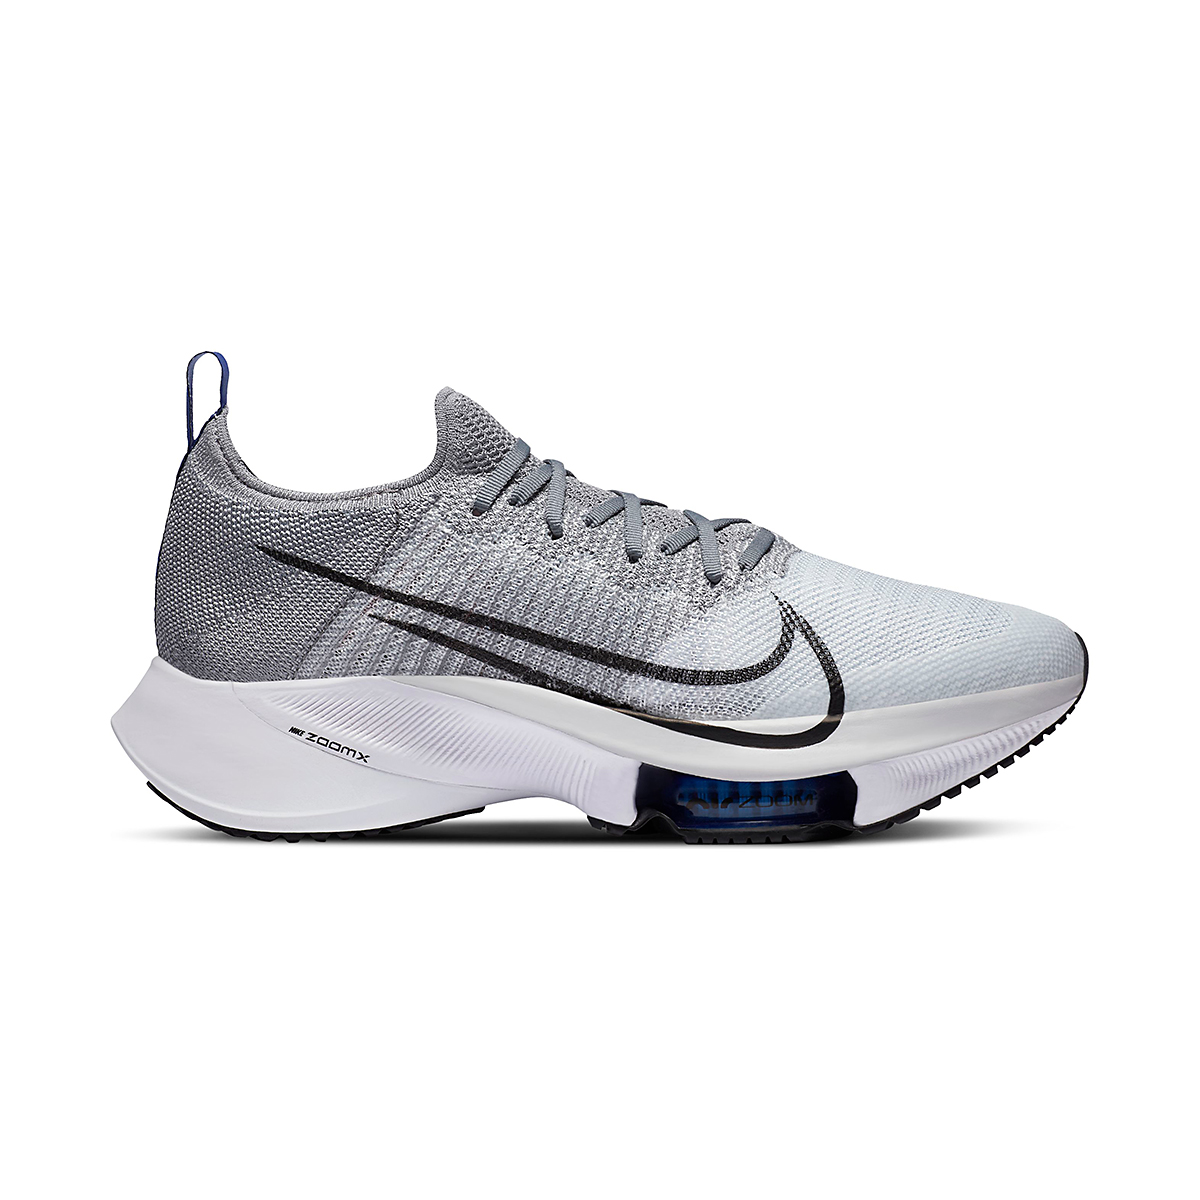 Men's Nike Air Zoom Tempo NEXT% Running Shoe - Color: Particle Grey/Black-Pure Platinum - Size: 6 - Width: Regular, Particle Grey/Black-Pure Platinum, large, image 1